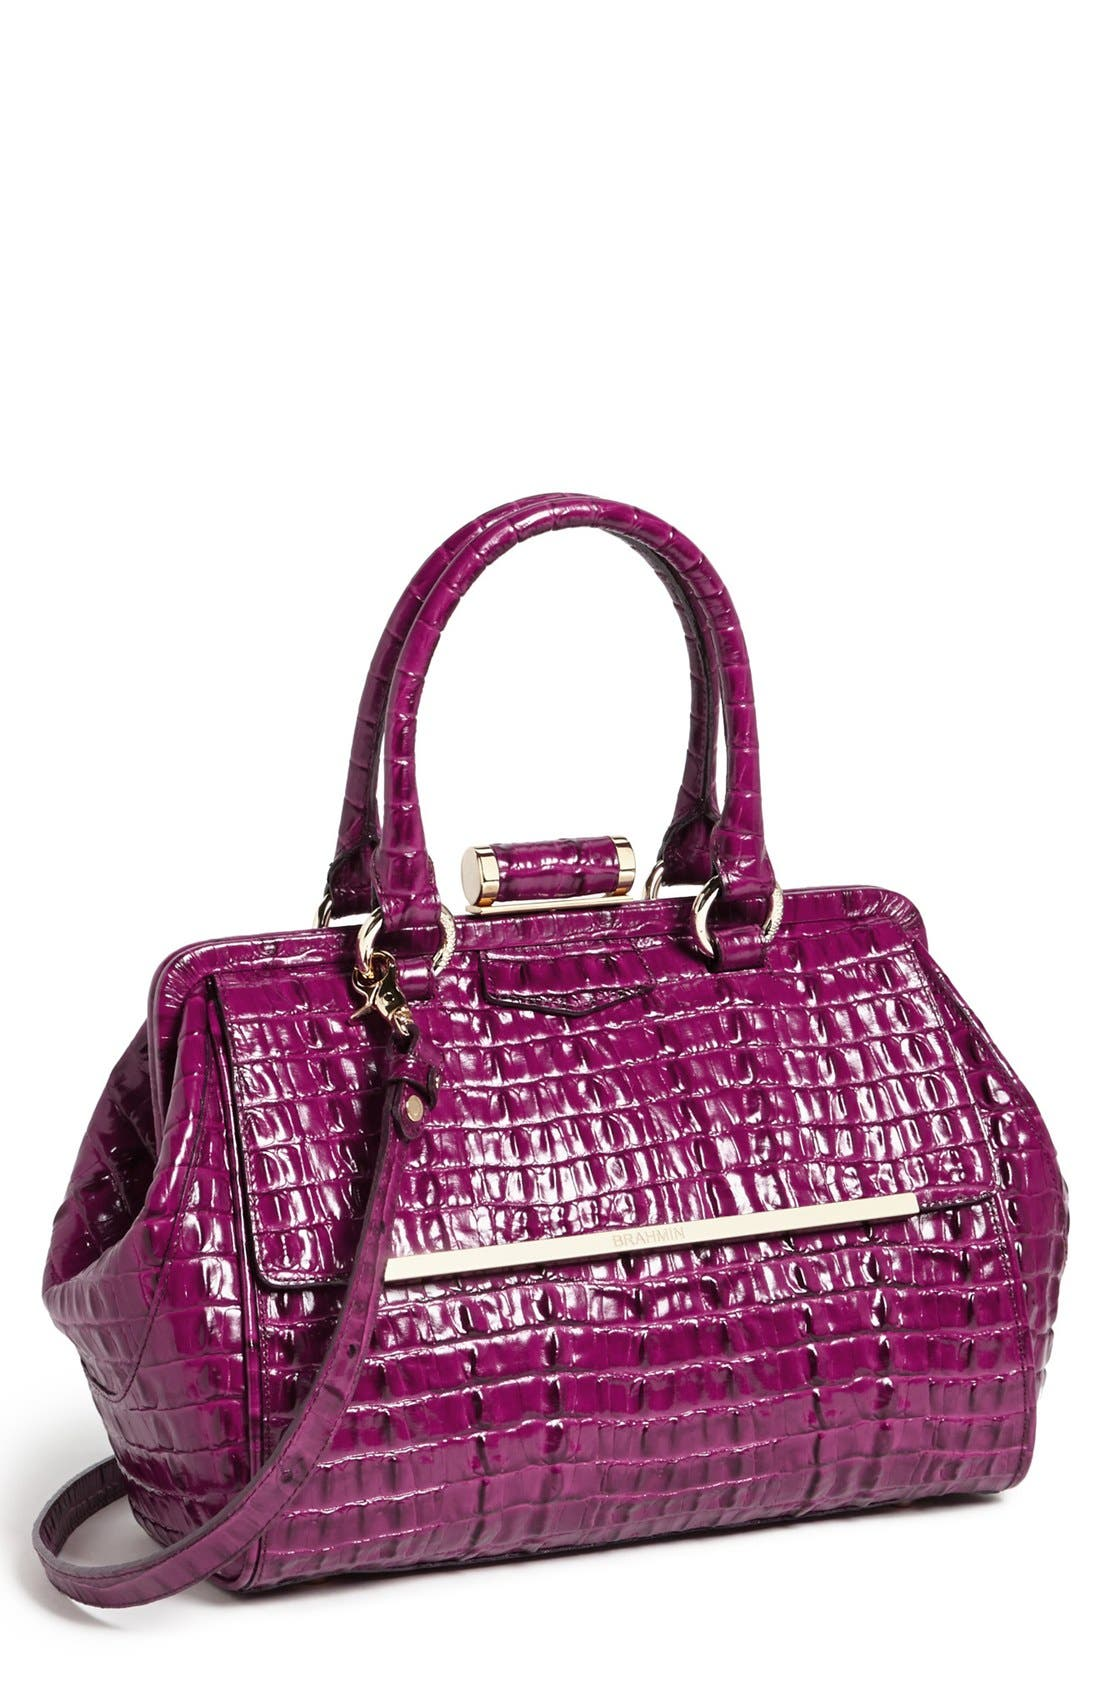 Alternate Image 1 Selected - Brahmin 'La Scala' Frame Satchel